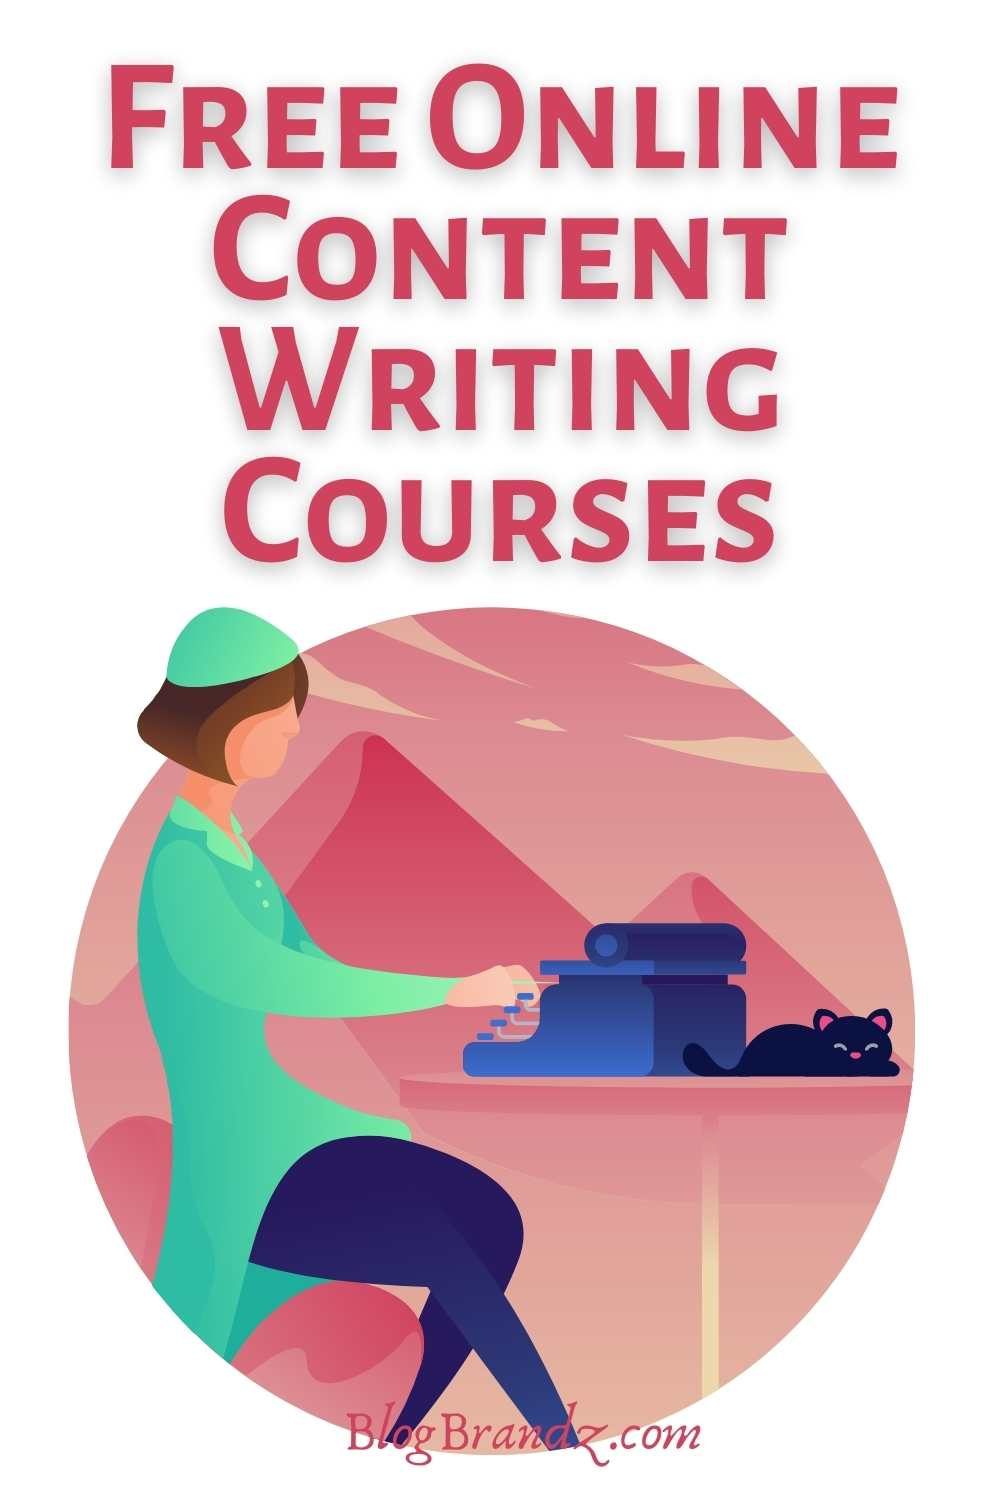 Free Online Content Writing Courses